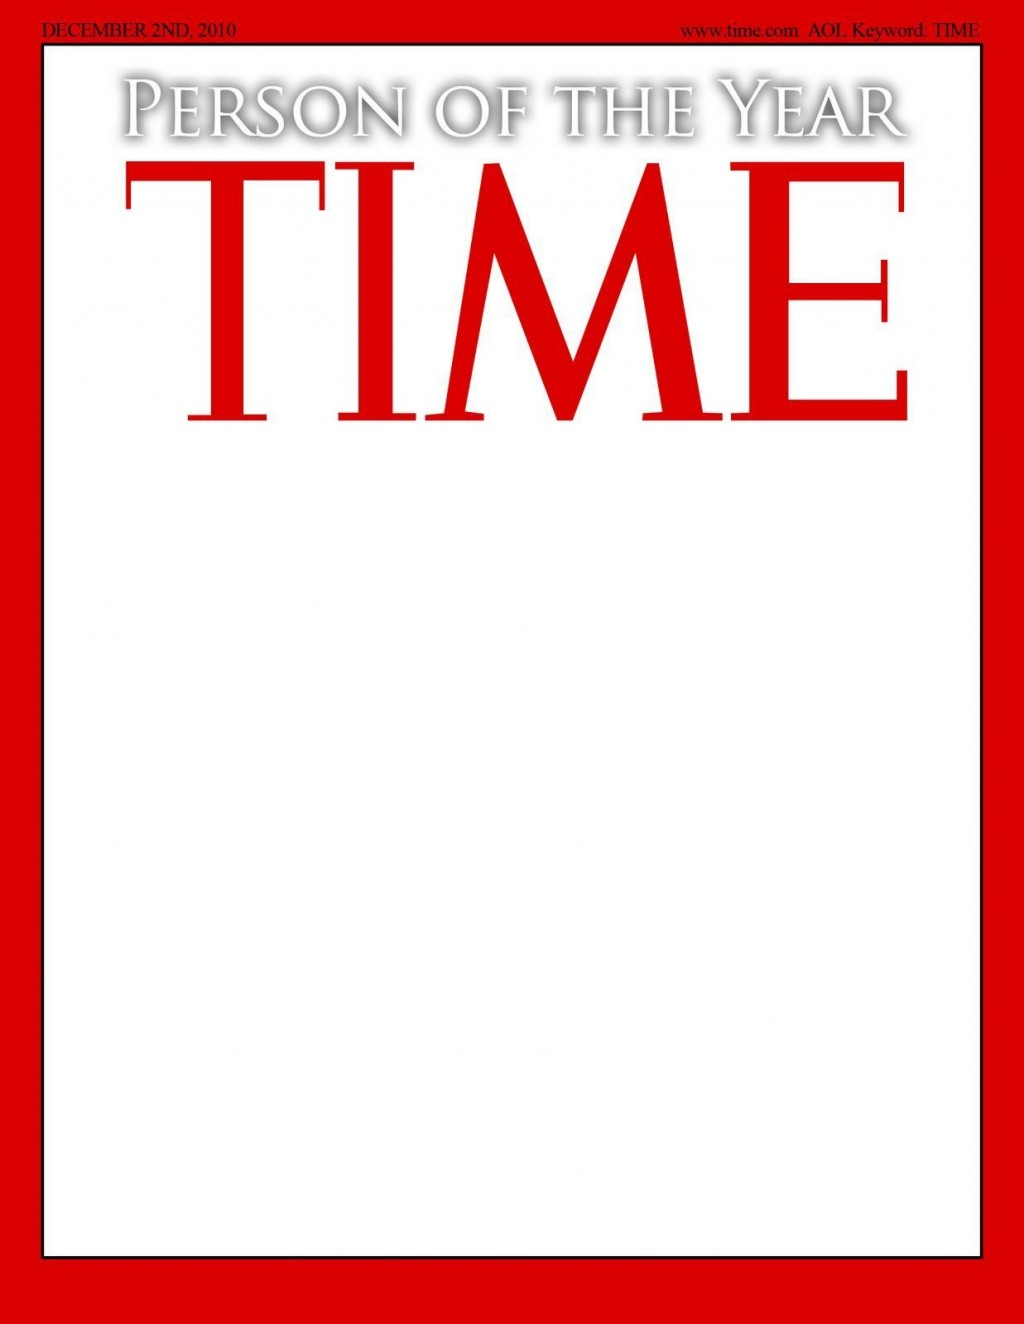 000 Unforgettable Photoshop Time Magazine Cover Template Idea  FakeLarge